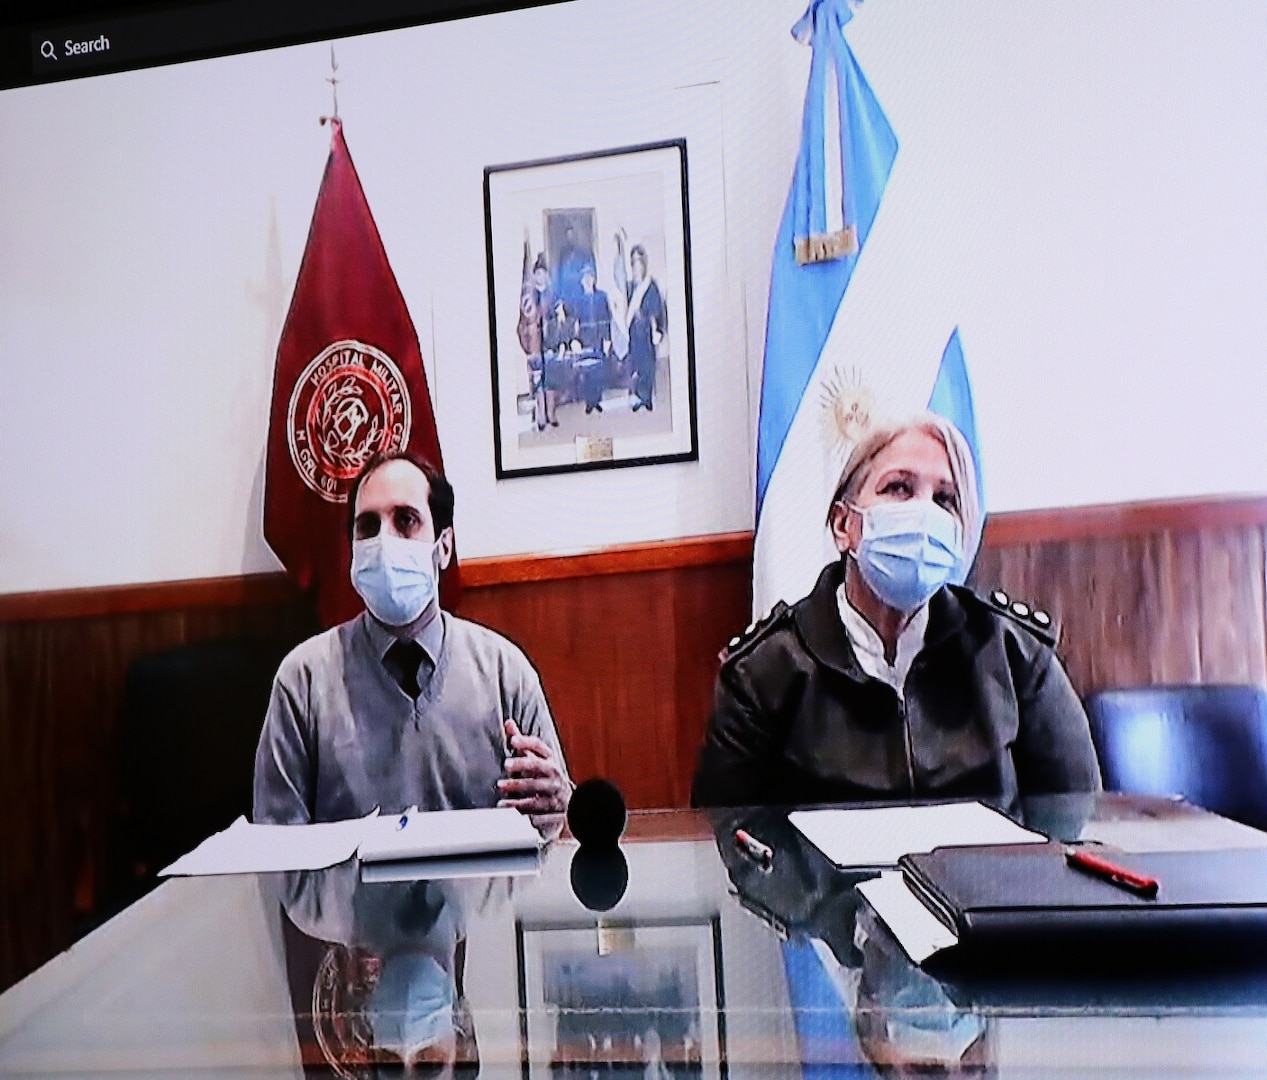 Argentine Army Col. Med Susana Pastor Arguello (right), Medical Director, Central Military Medical Hospital, Buenos Aires, Argentina, and translator Diego Blasco (left) answer COVID-19 questions during a video teleconference with Brooke Army Medical Center doctors Oct. 21.